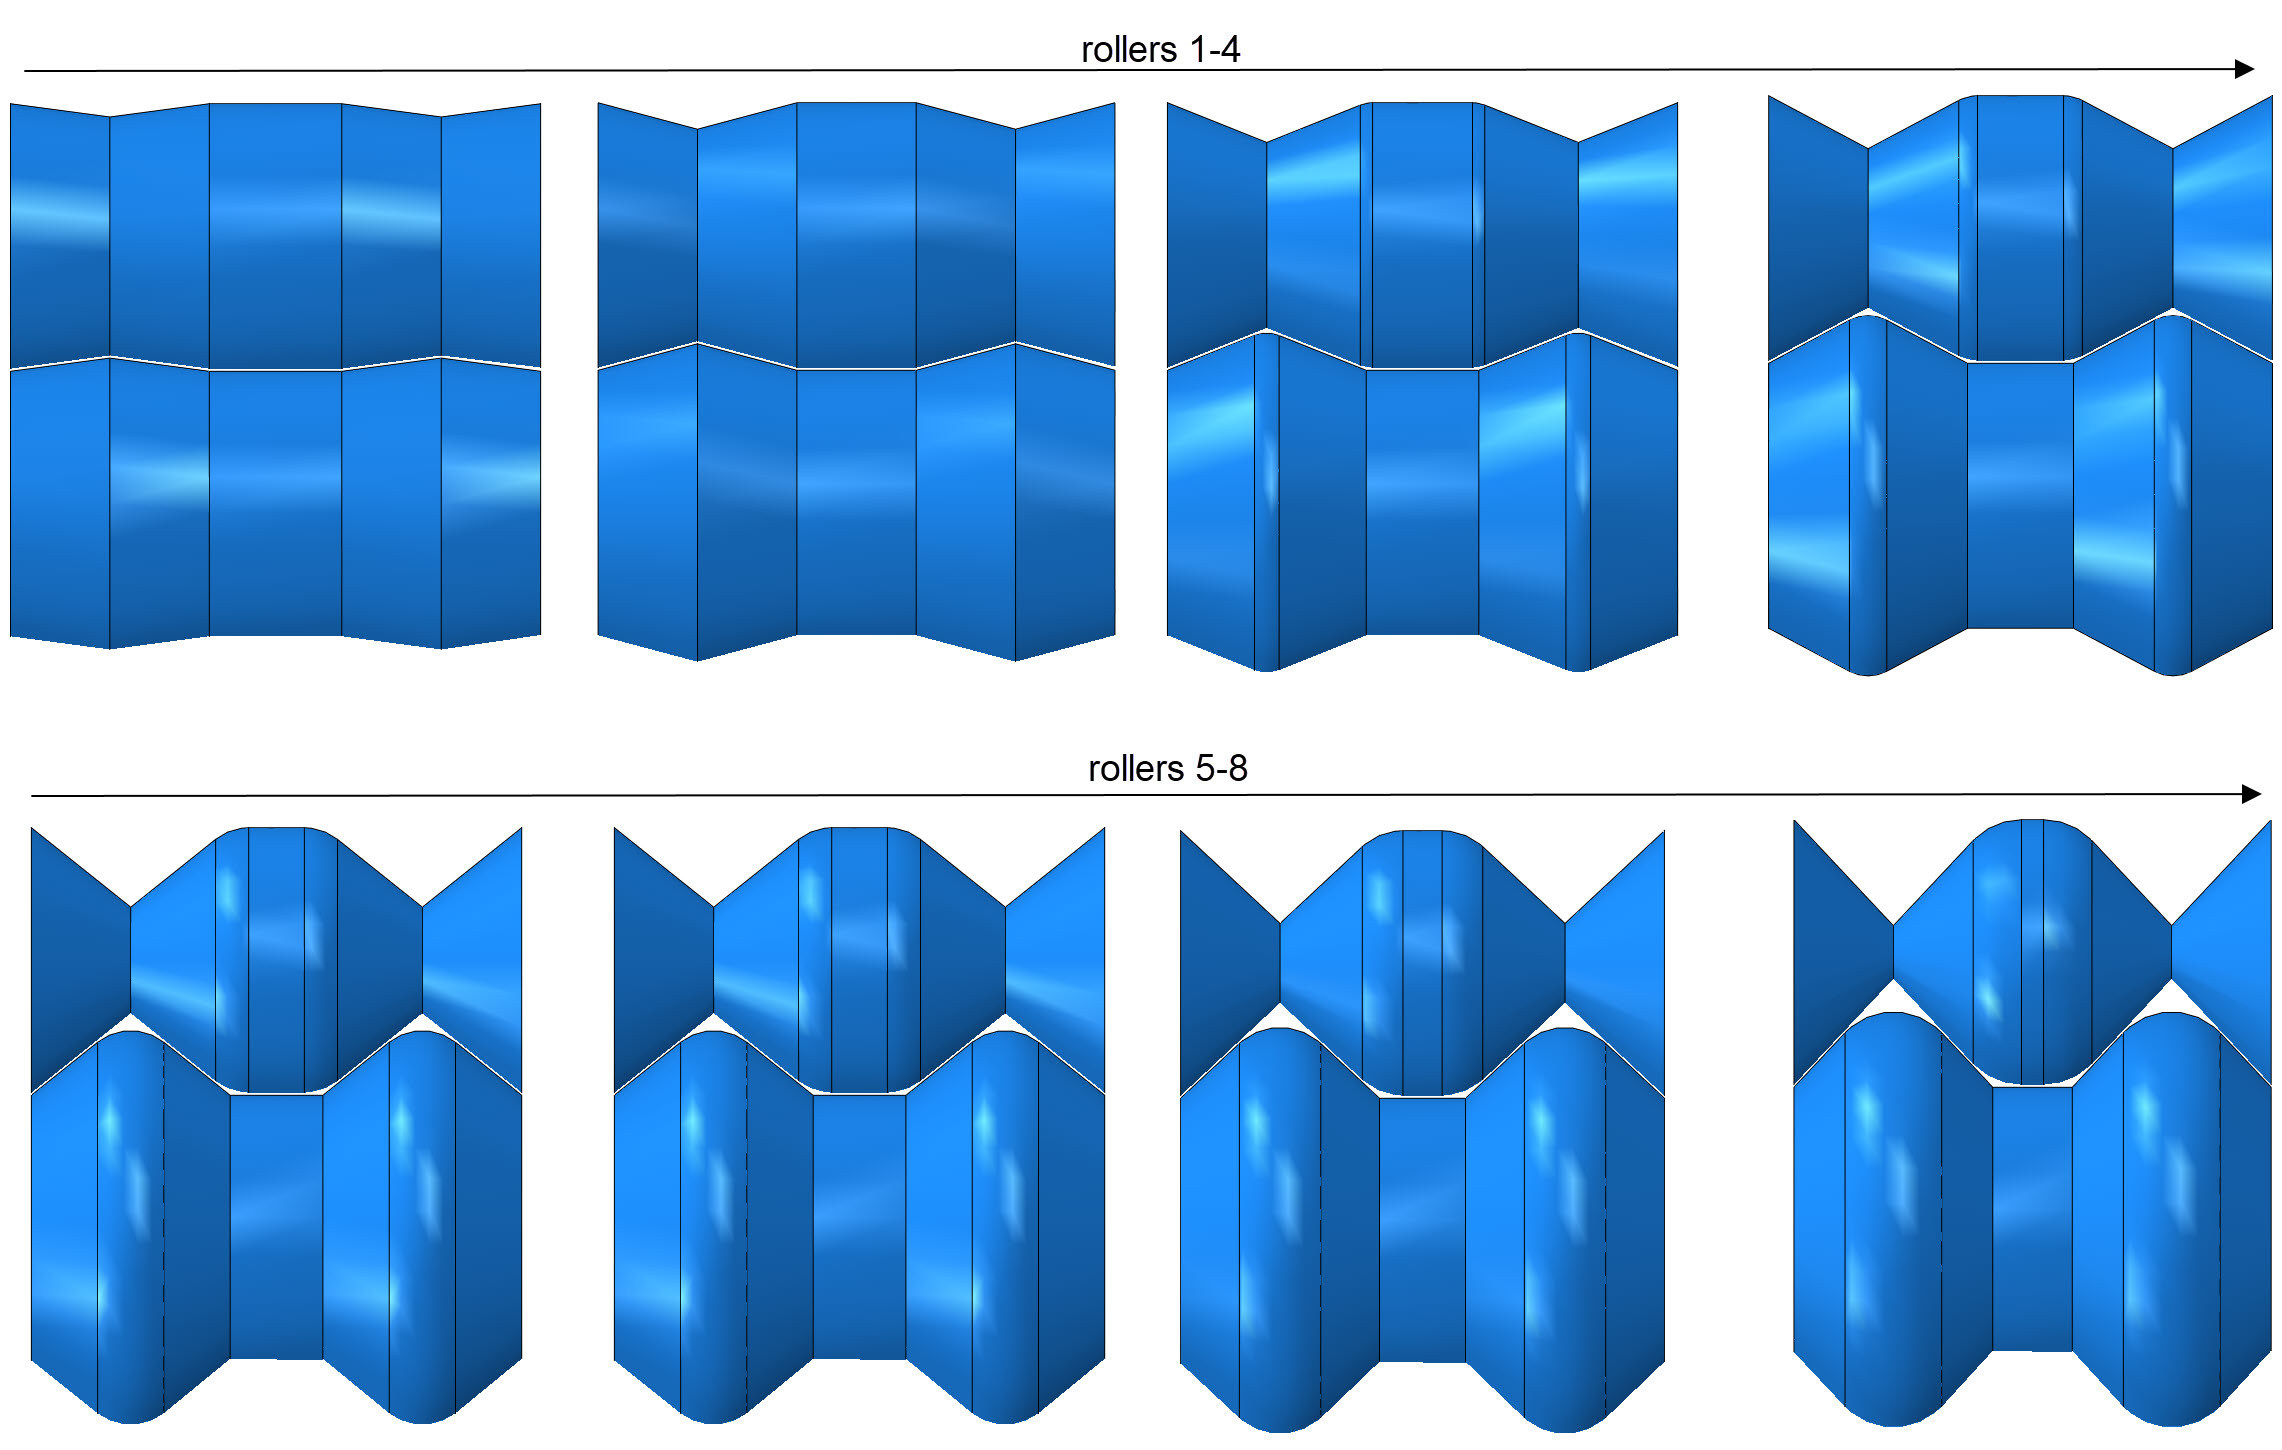 rollers for roll forming process in Abaqus